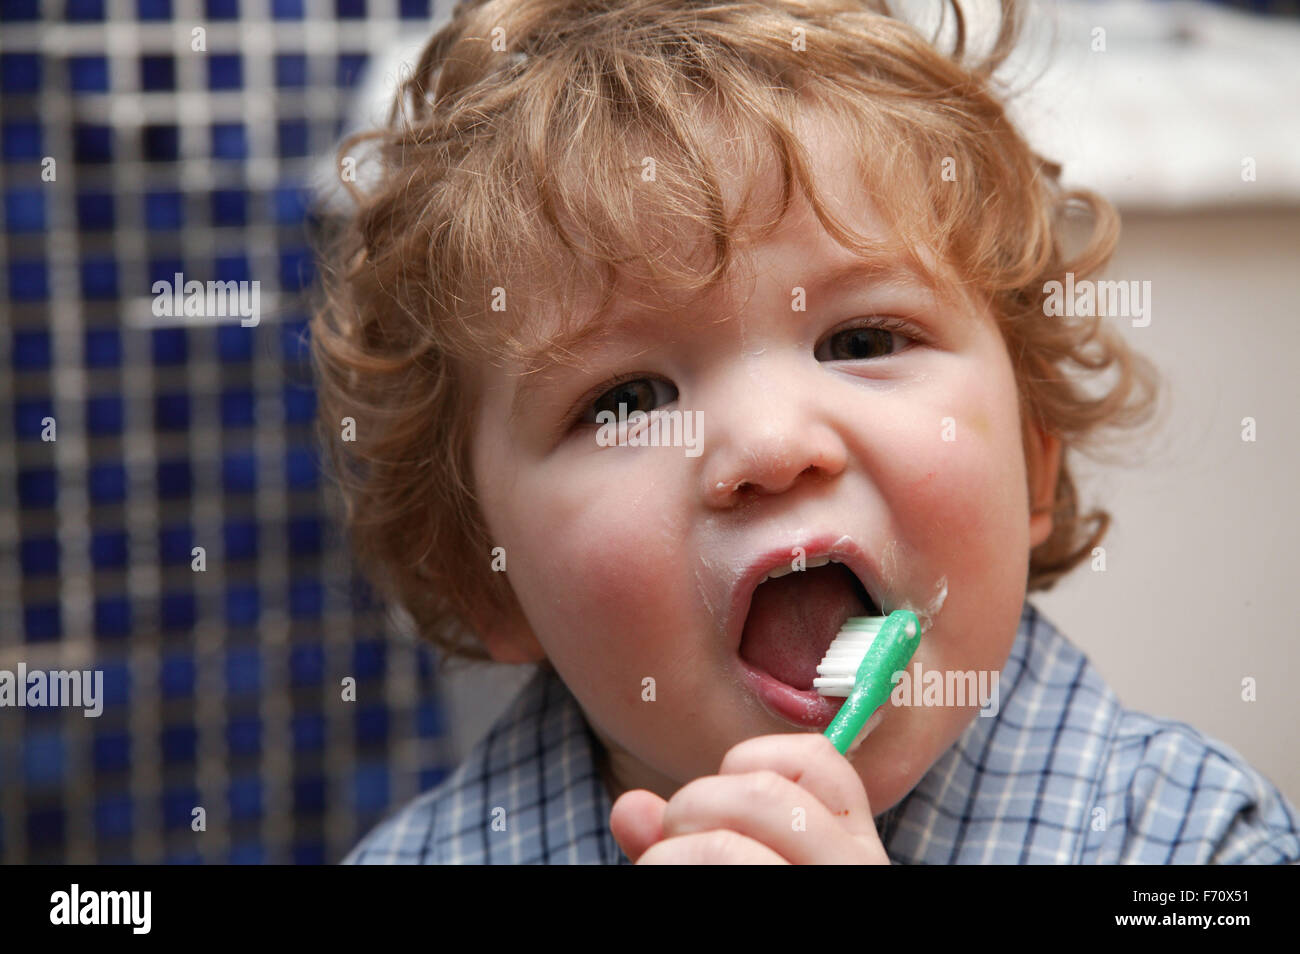 Baby boy learning to clean his own teeth, Stock Photo